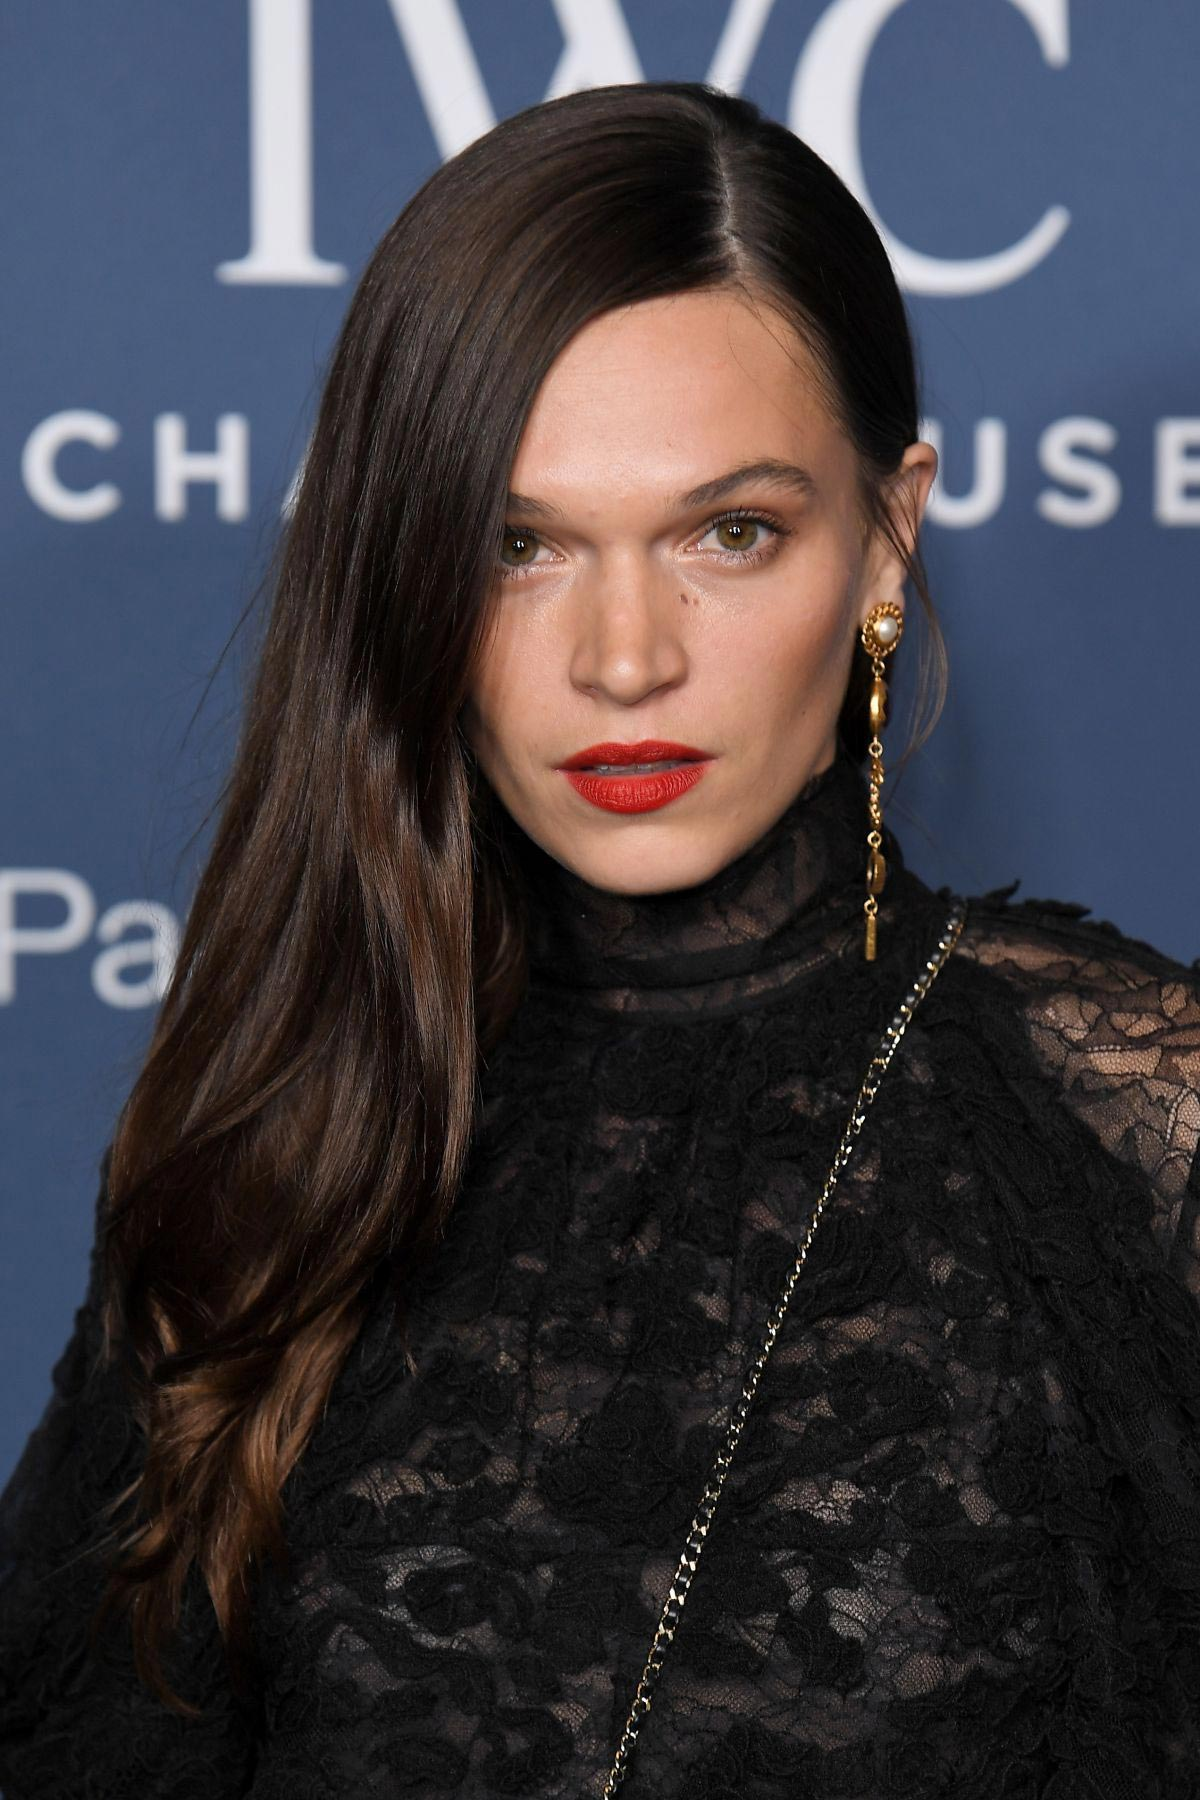 Anna Brewster at IWC Schaffhausen Gala Dinner in London 2018/10/09 1